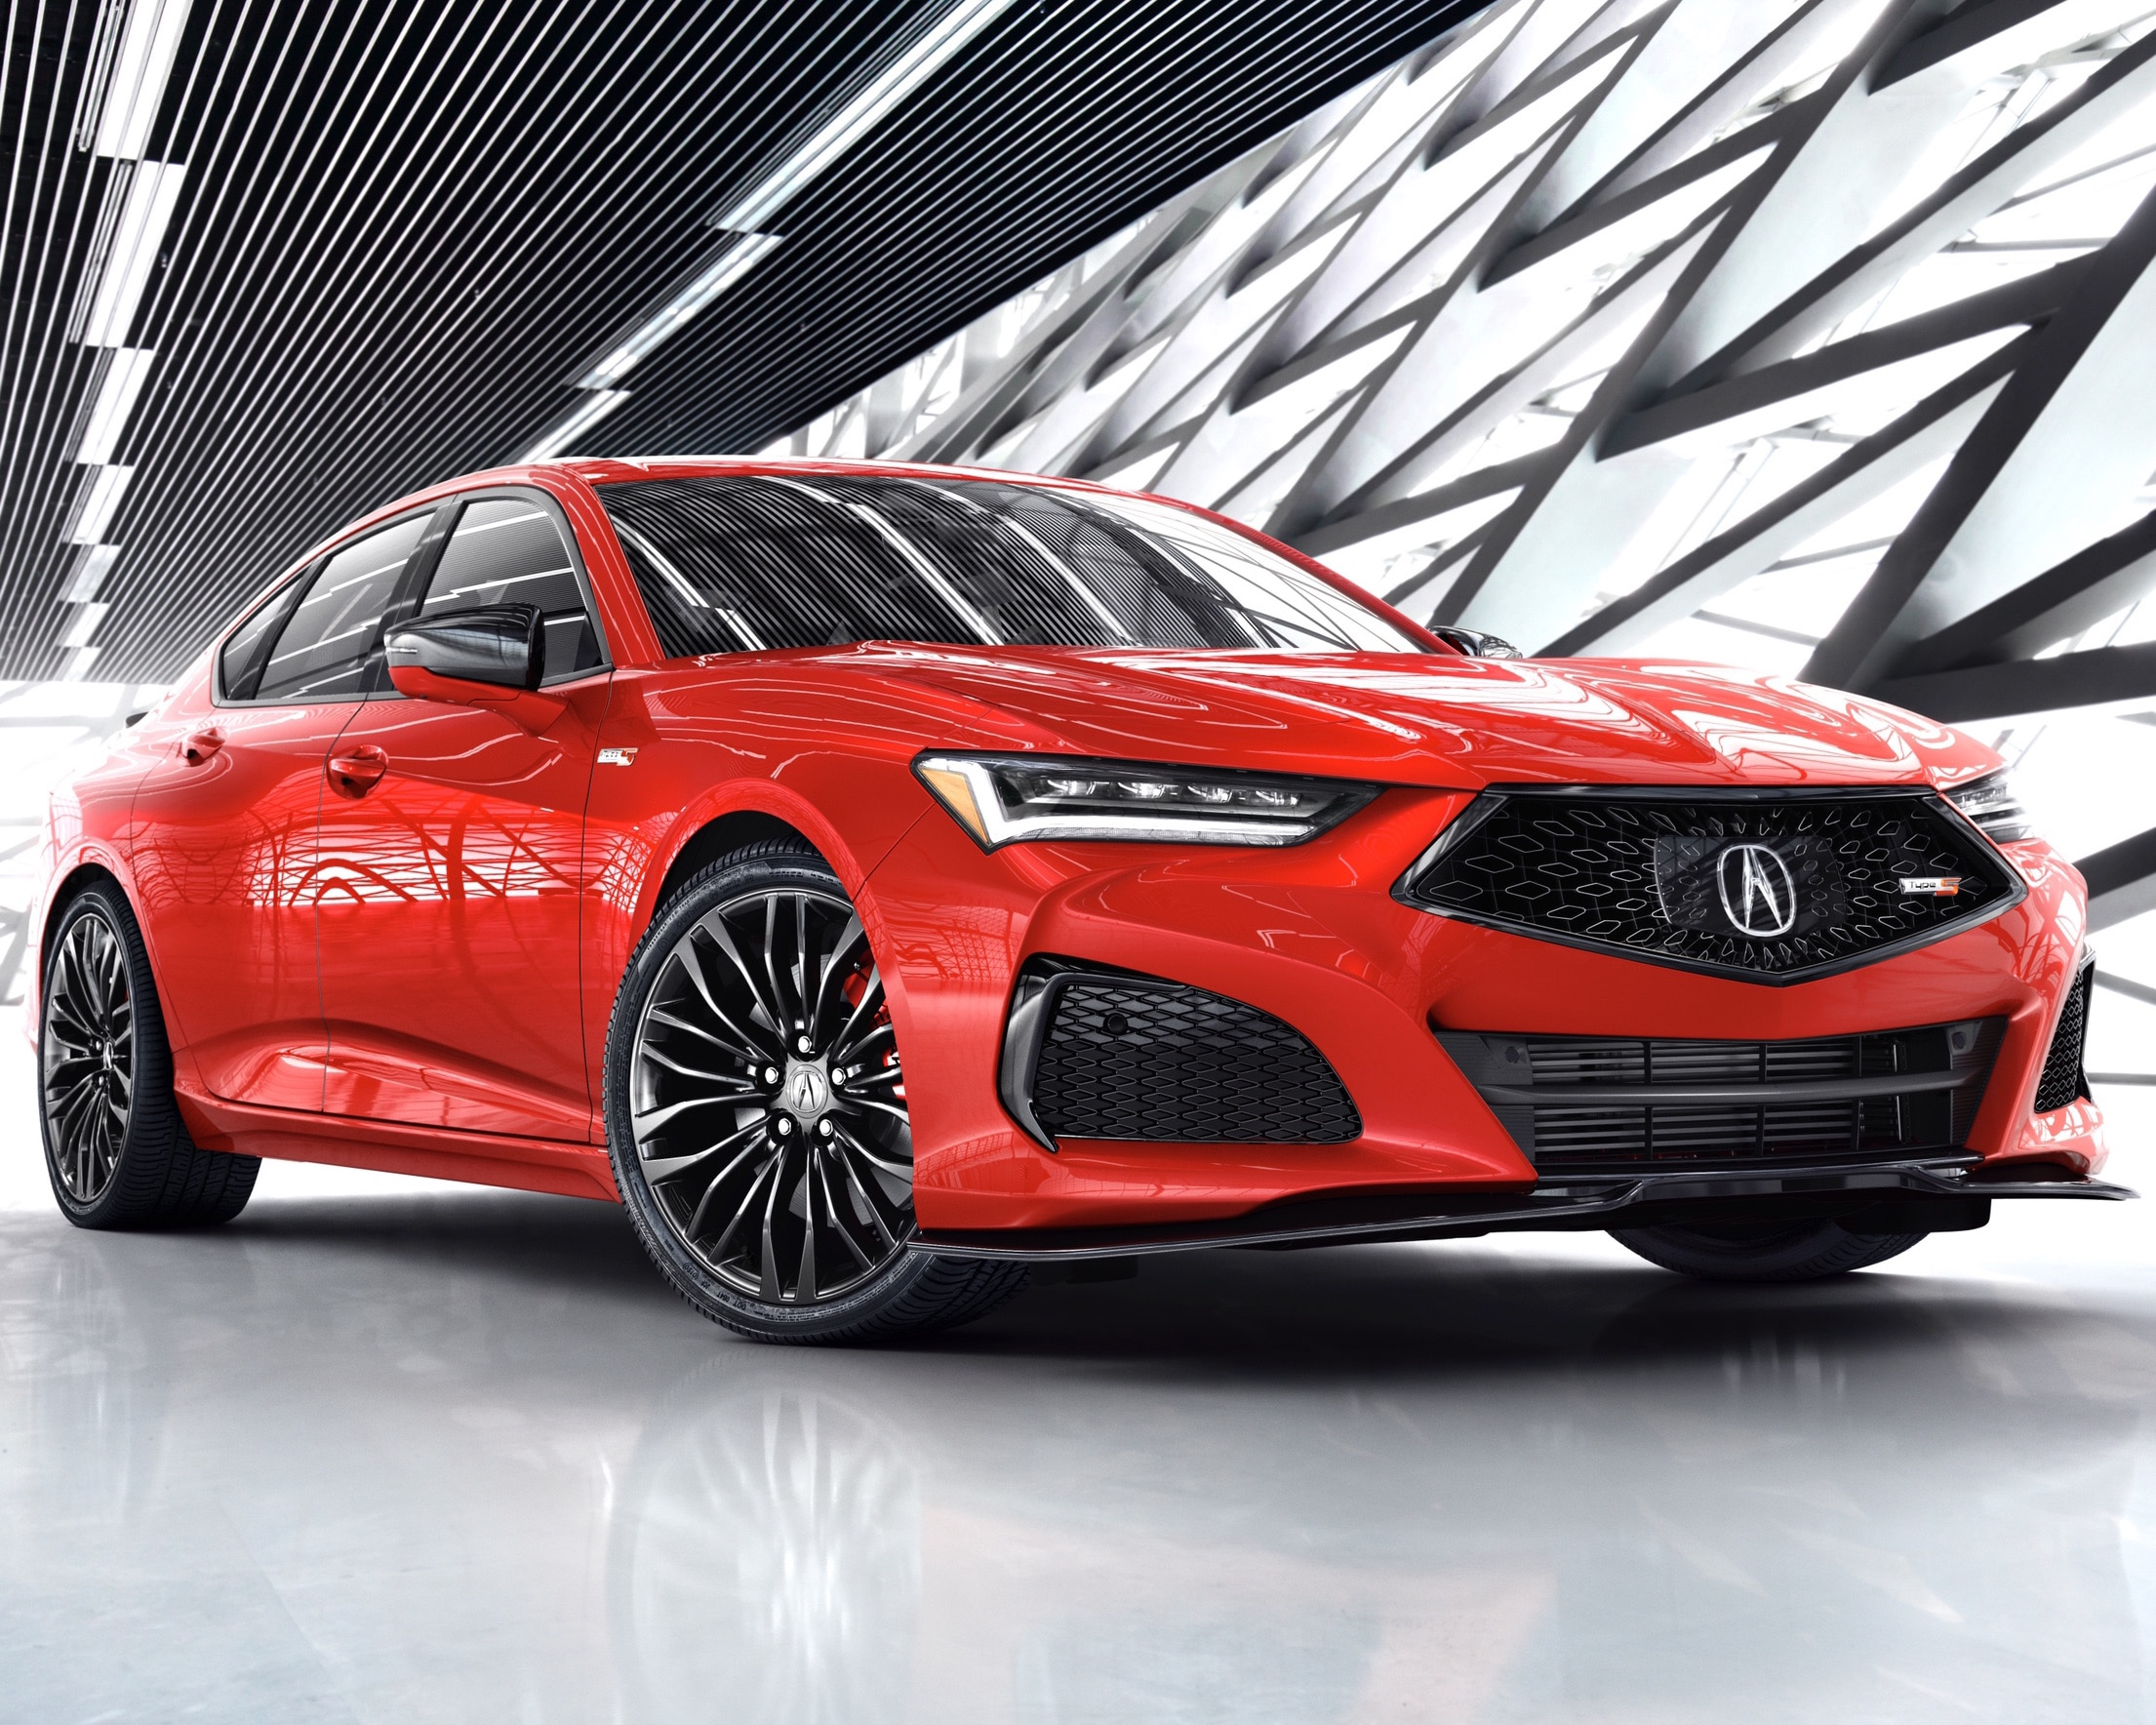 2021 acura tlx and tlx type s revealed • hype garage